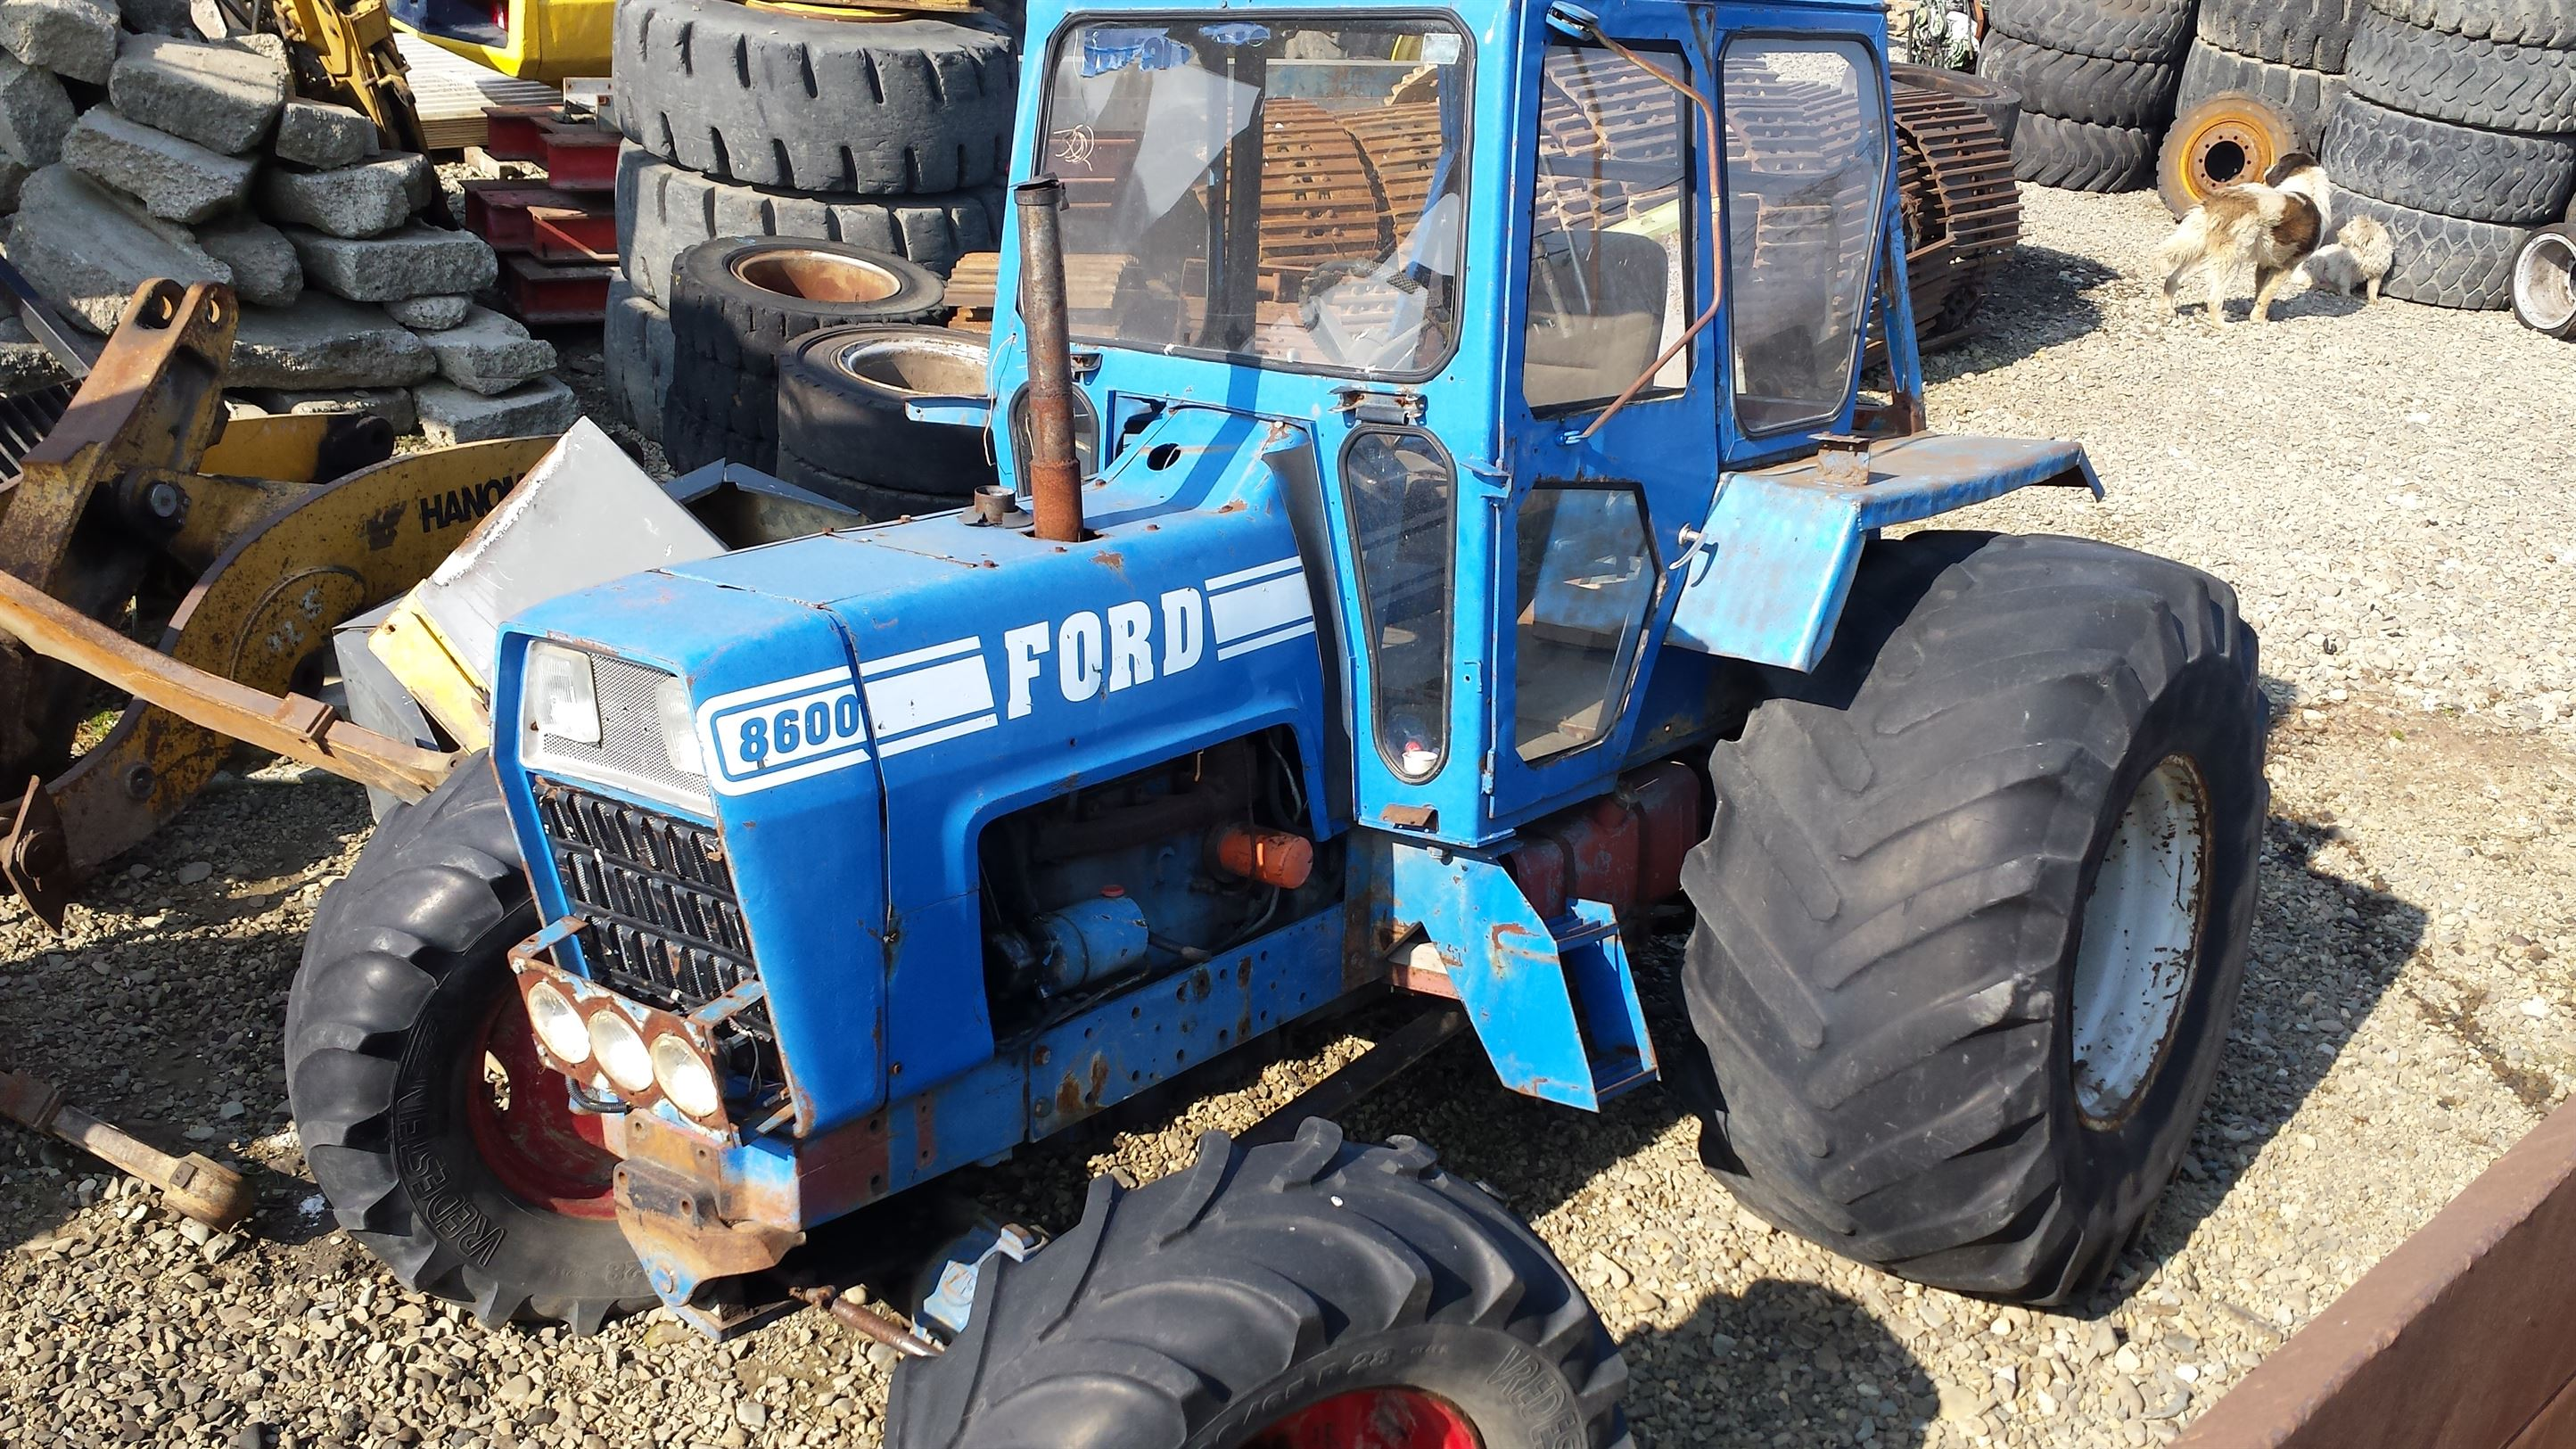 Ford Tractor Engine : Ford tractor engine